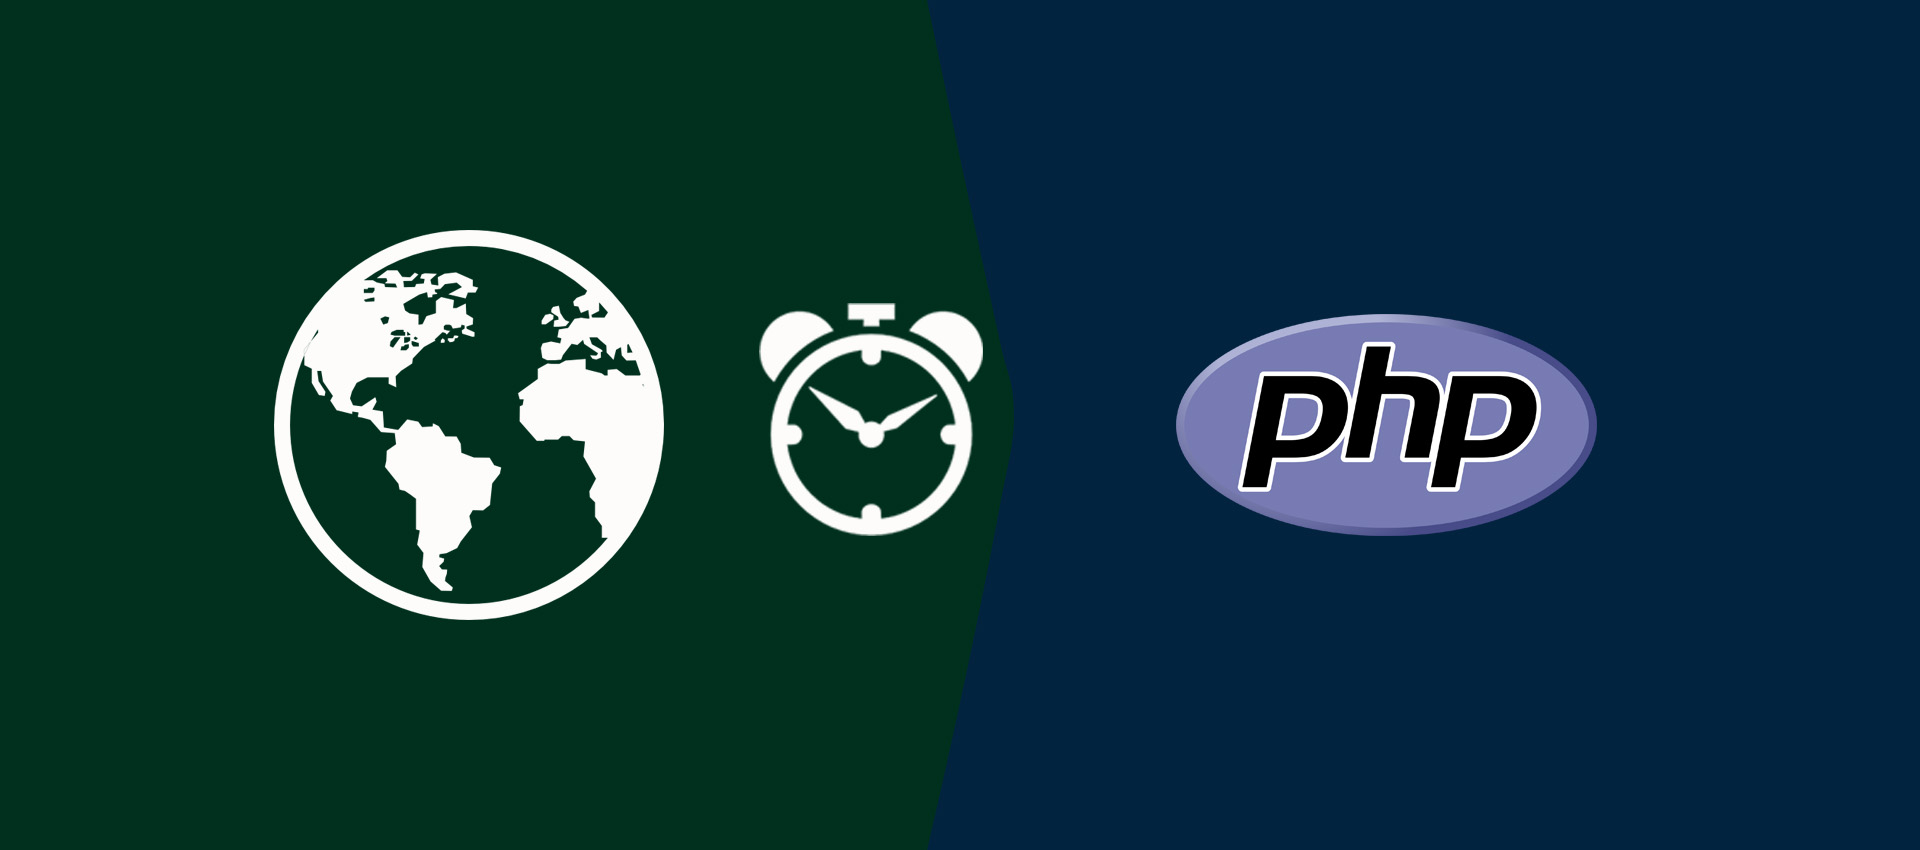 Convert Date And Time To Different Timezone In PHP